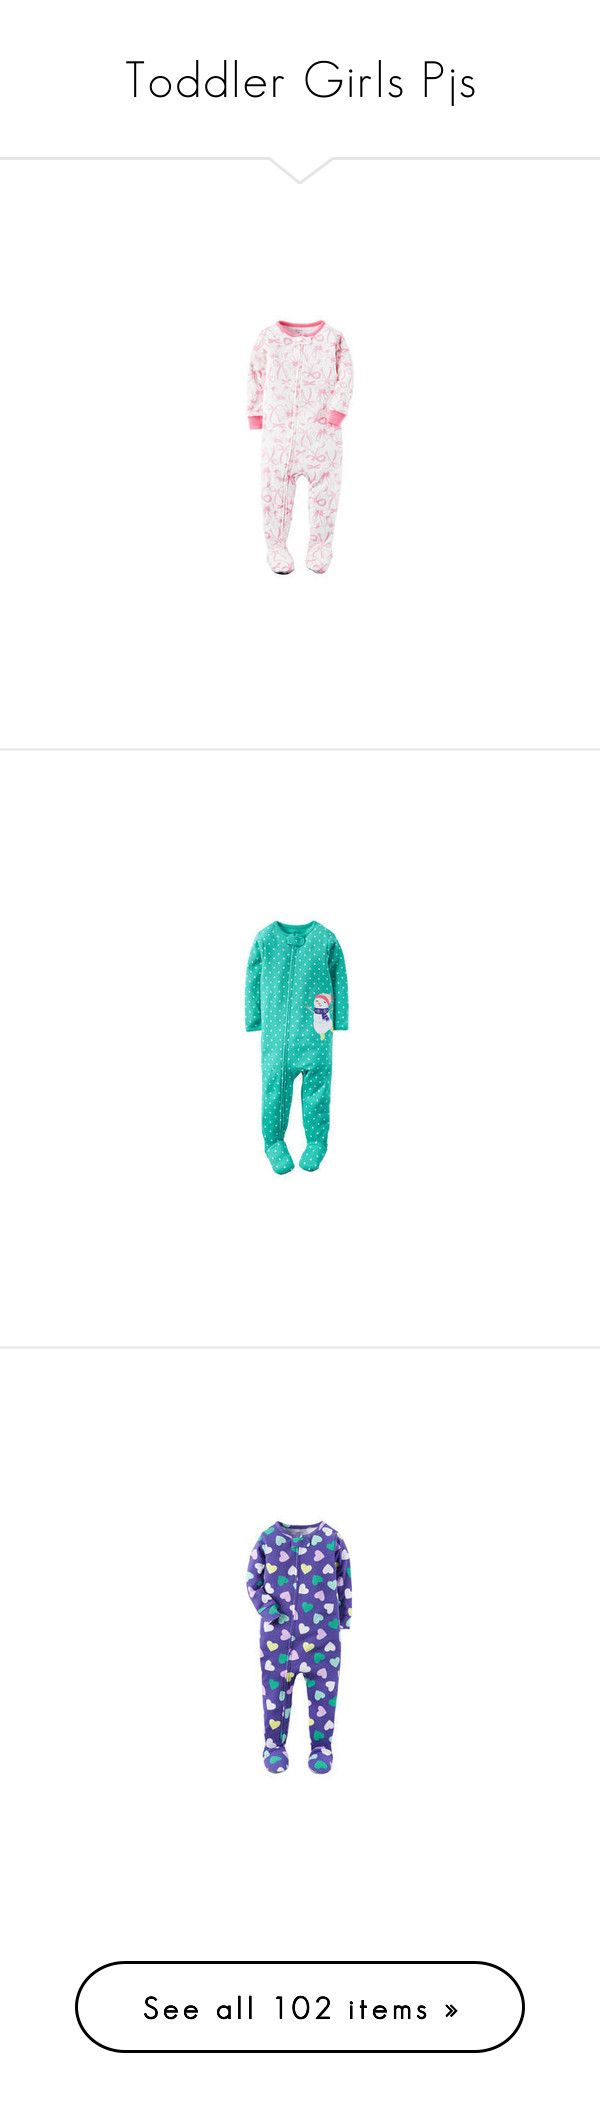 """""""Toddler Girls Pjs"""" by lillie010 ❤ liked on Polyvore featuring intimates, sleepwear, pajamas, petite sleepwear, petite pajamas, long sleeve night shirt, night shirt, long sleeve sleepwear, long sleeve sleep shirt and long sleeve nightshirt"""